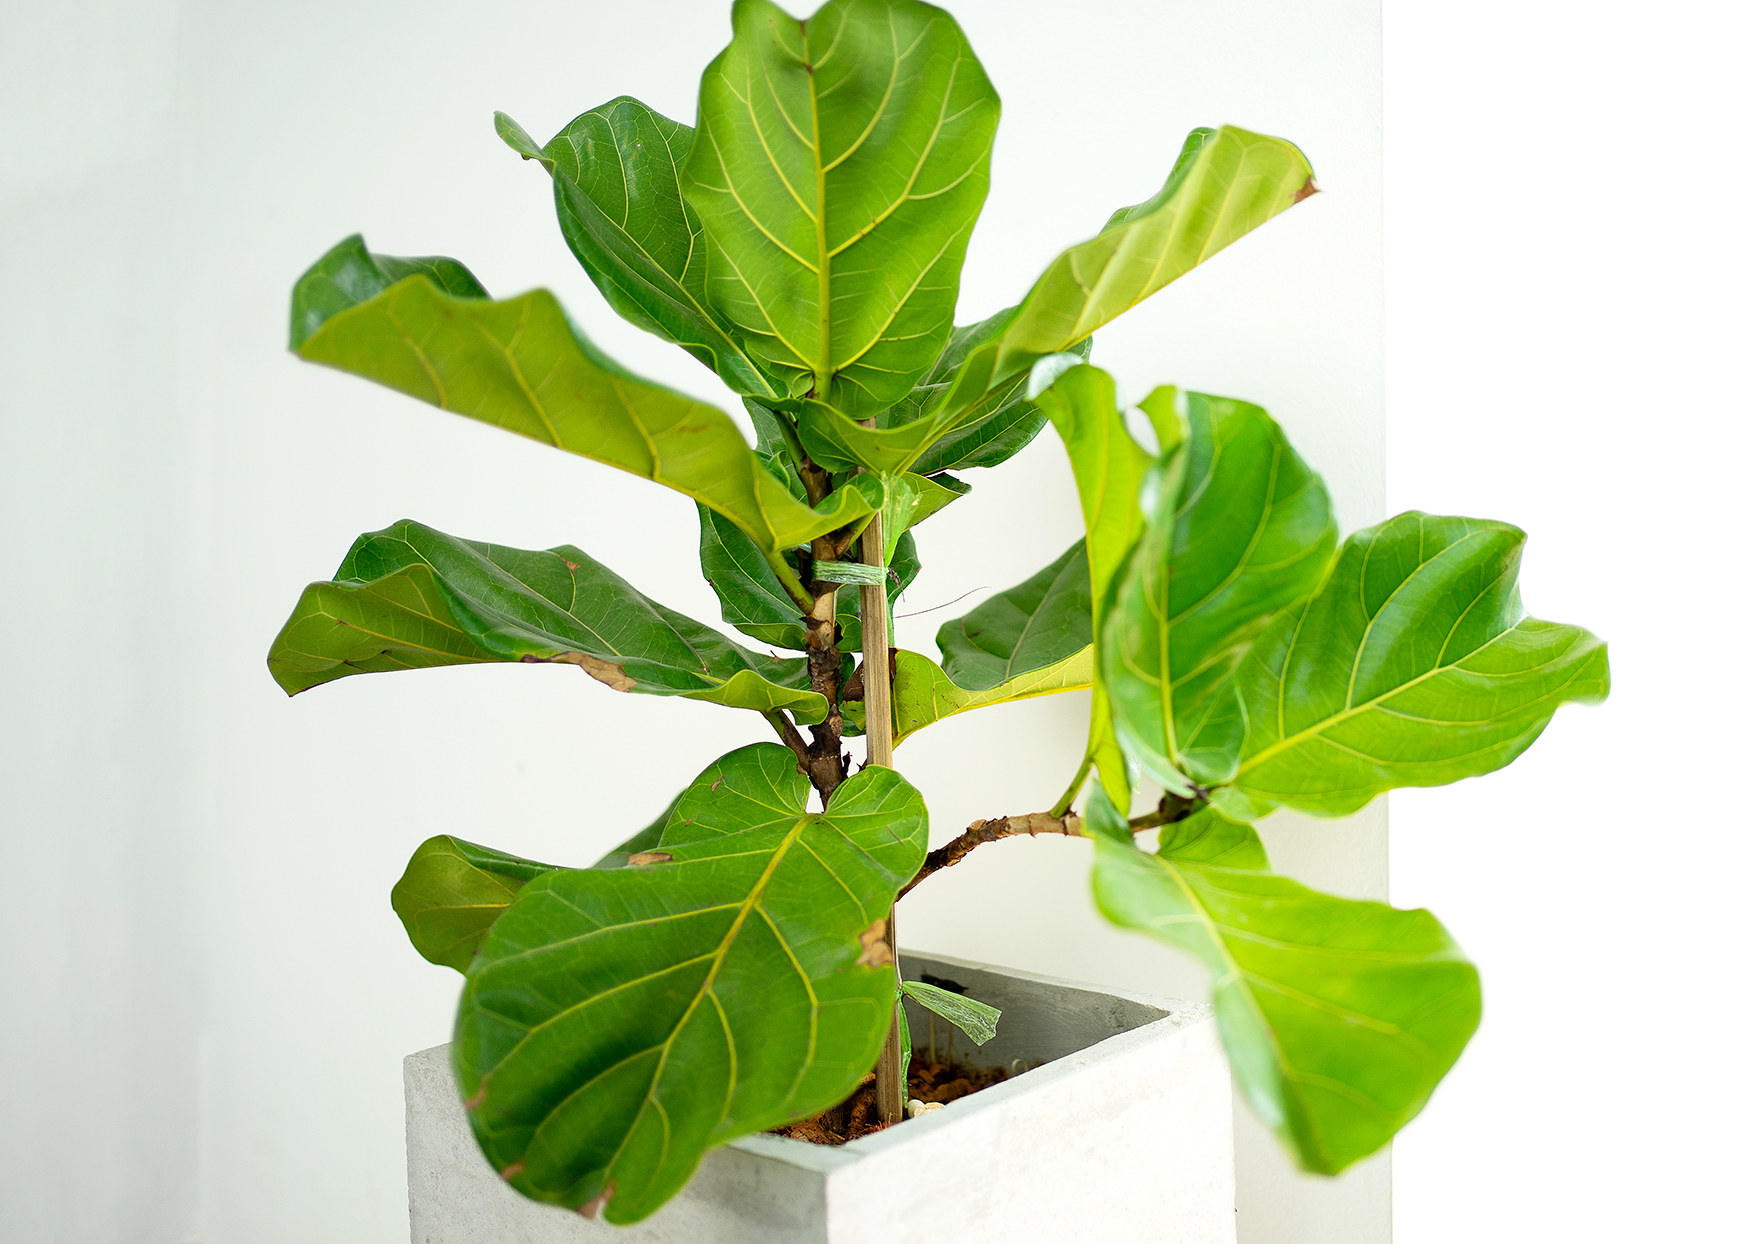 fiddle leaf fig plant in concrete planter in nicely lit home